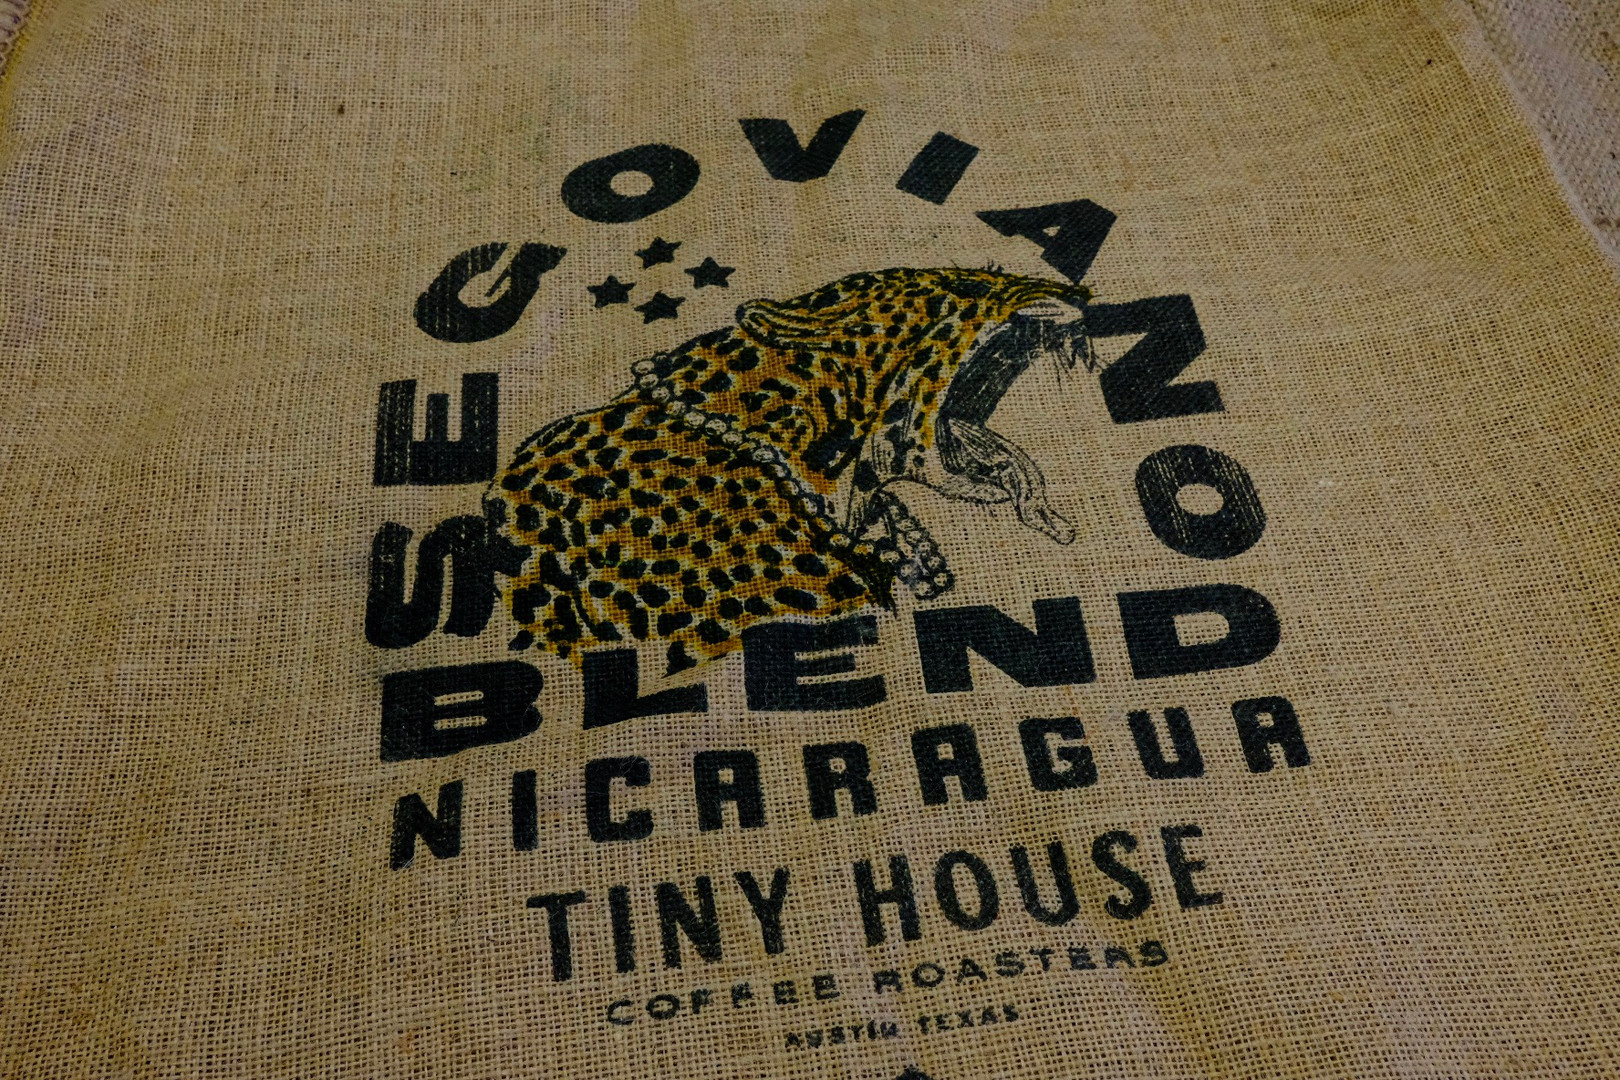 We proudly support Tiny House Coffee (Buda)